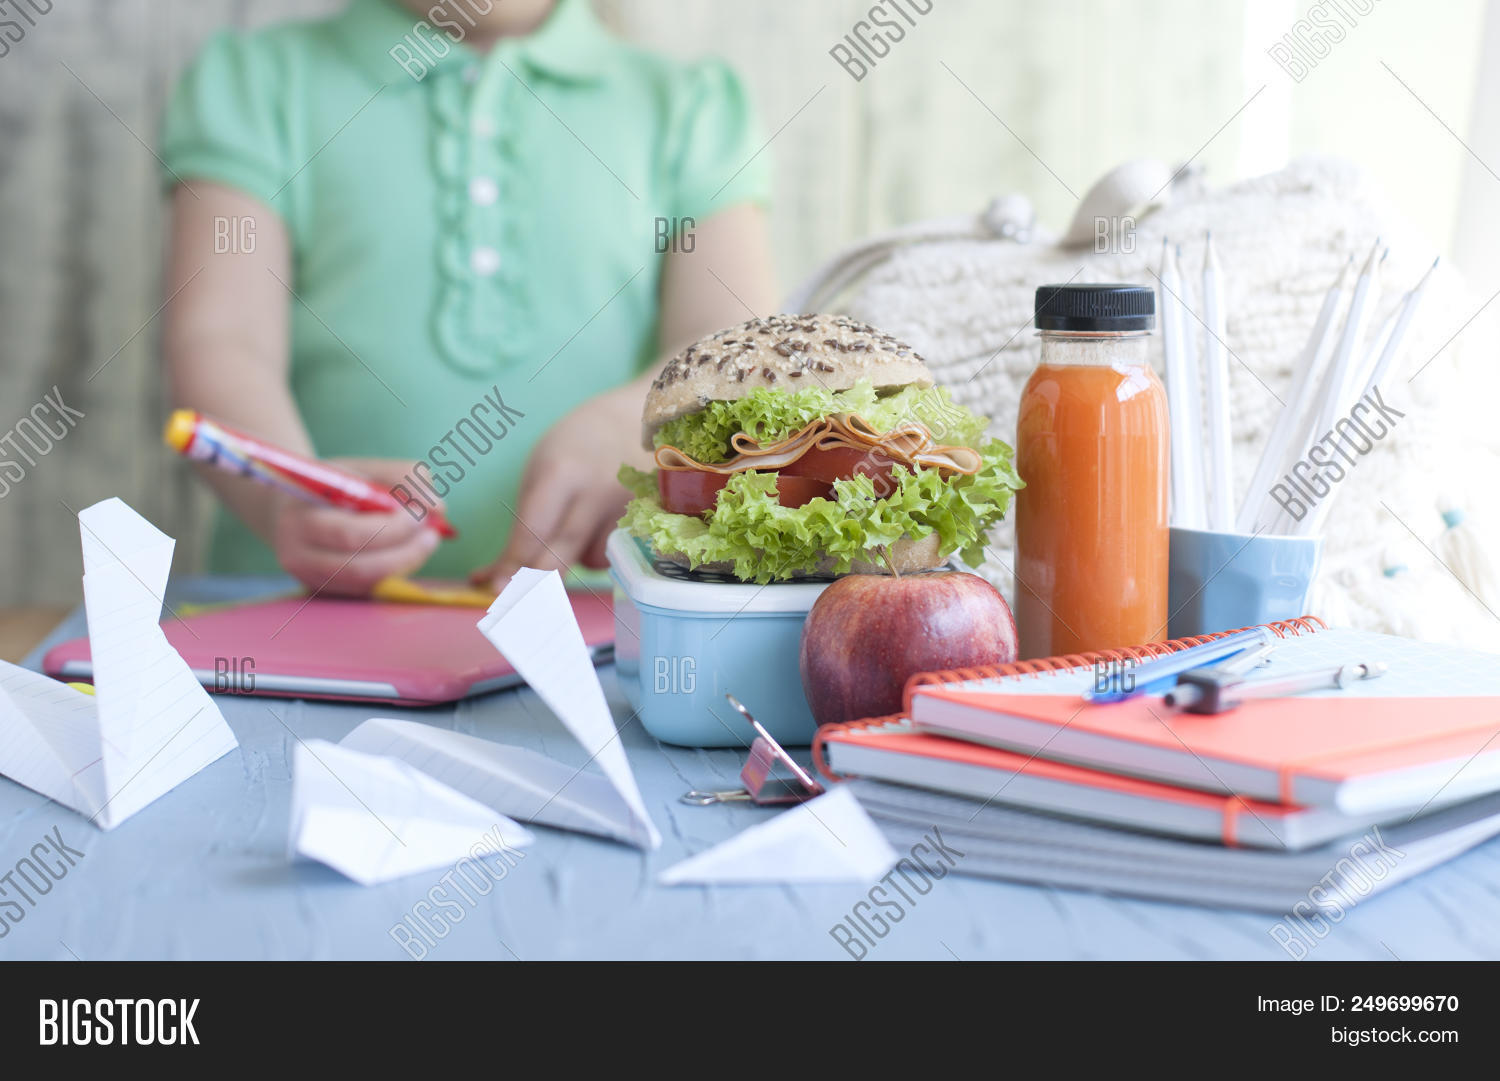 Lunch In A Box School Lunch Box Juice Image Photo Free Trial Bigstock